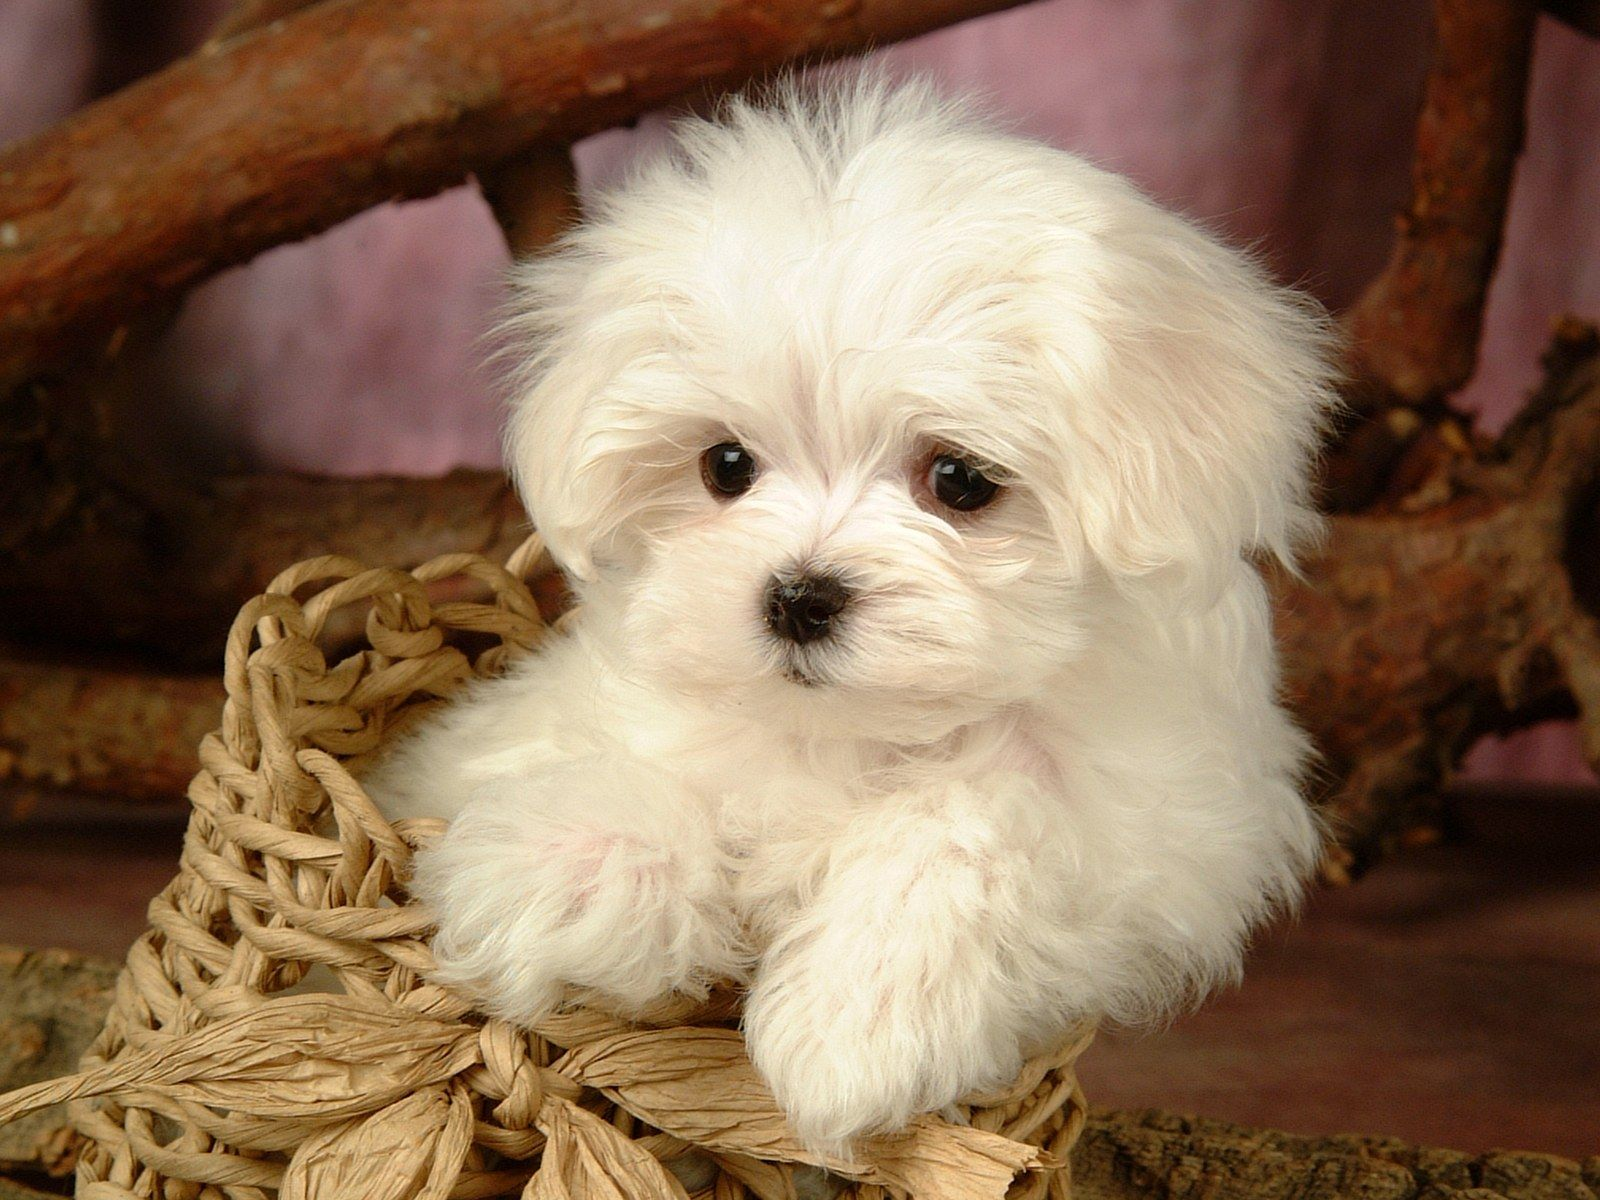 dogs | fluffy maltese puppy dogs - white maltese puppies wallpapers